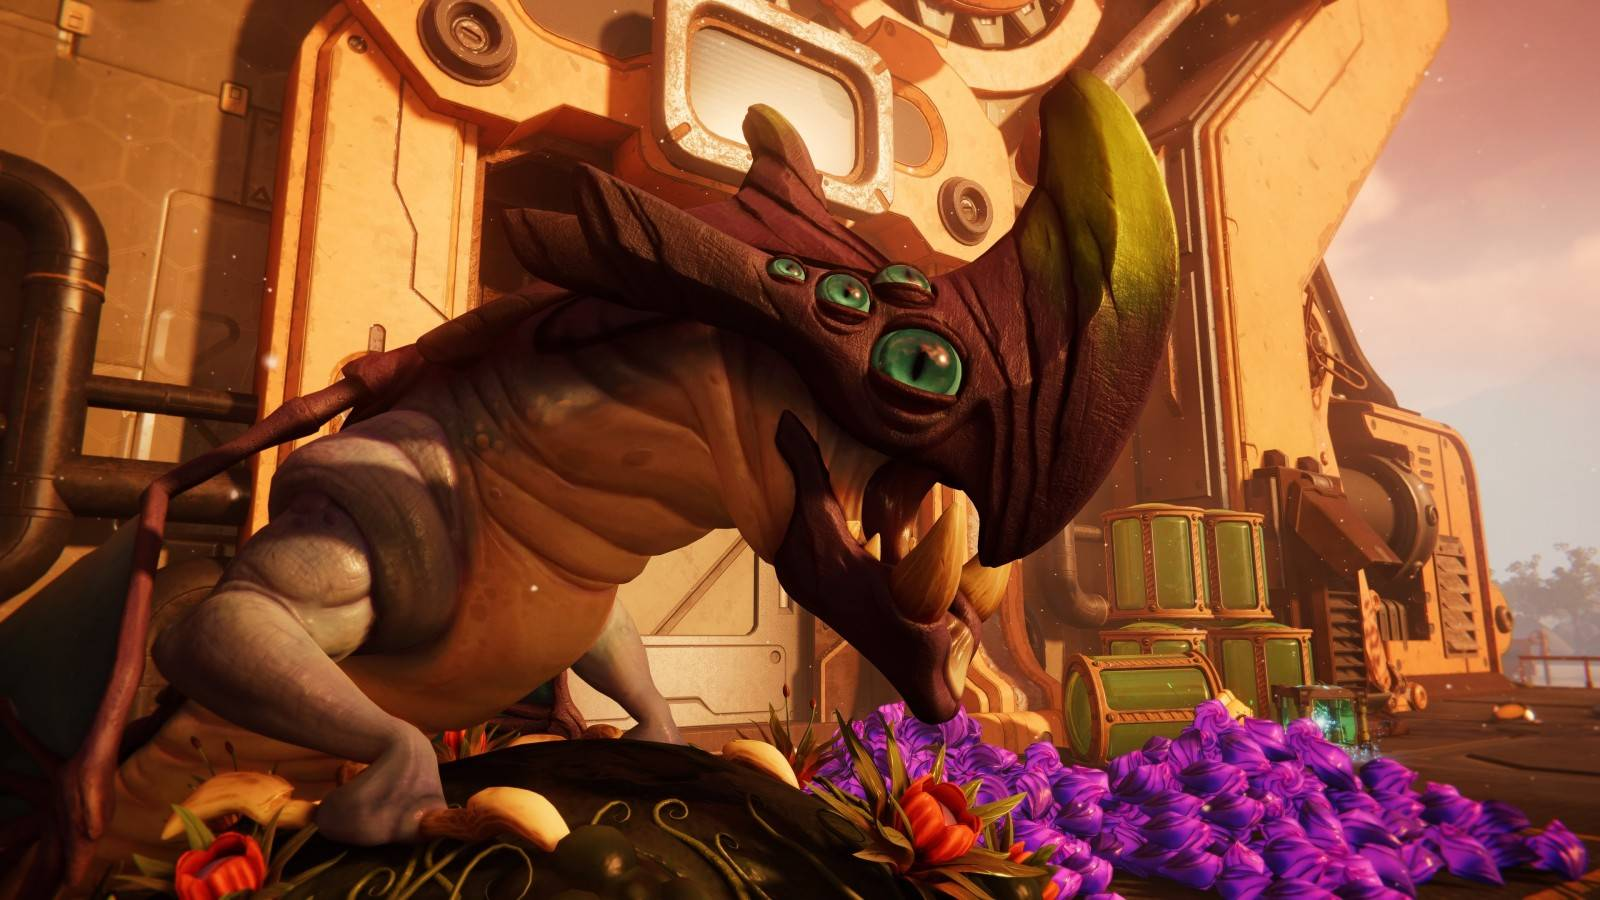 Reseña: Ratchet and Clank: Rift Apart (PlayStation 5) 6